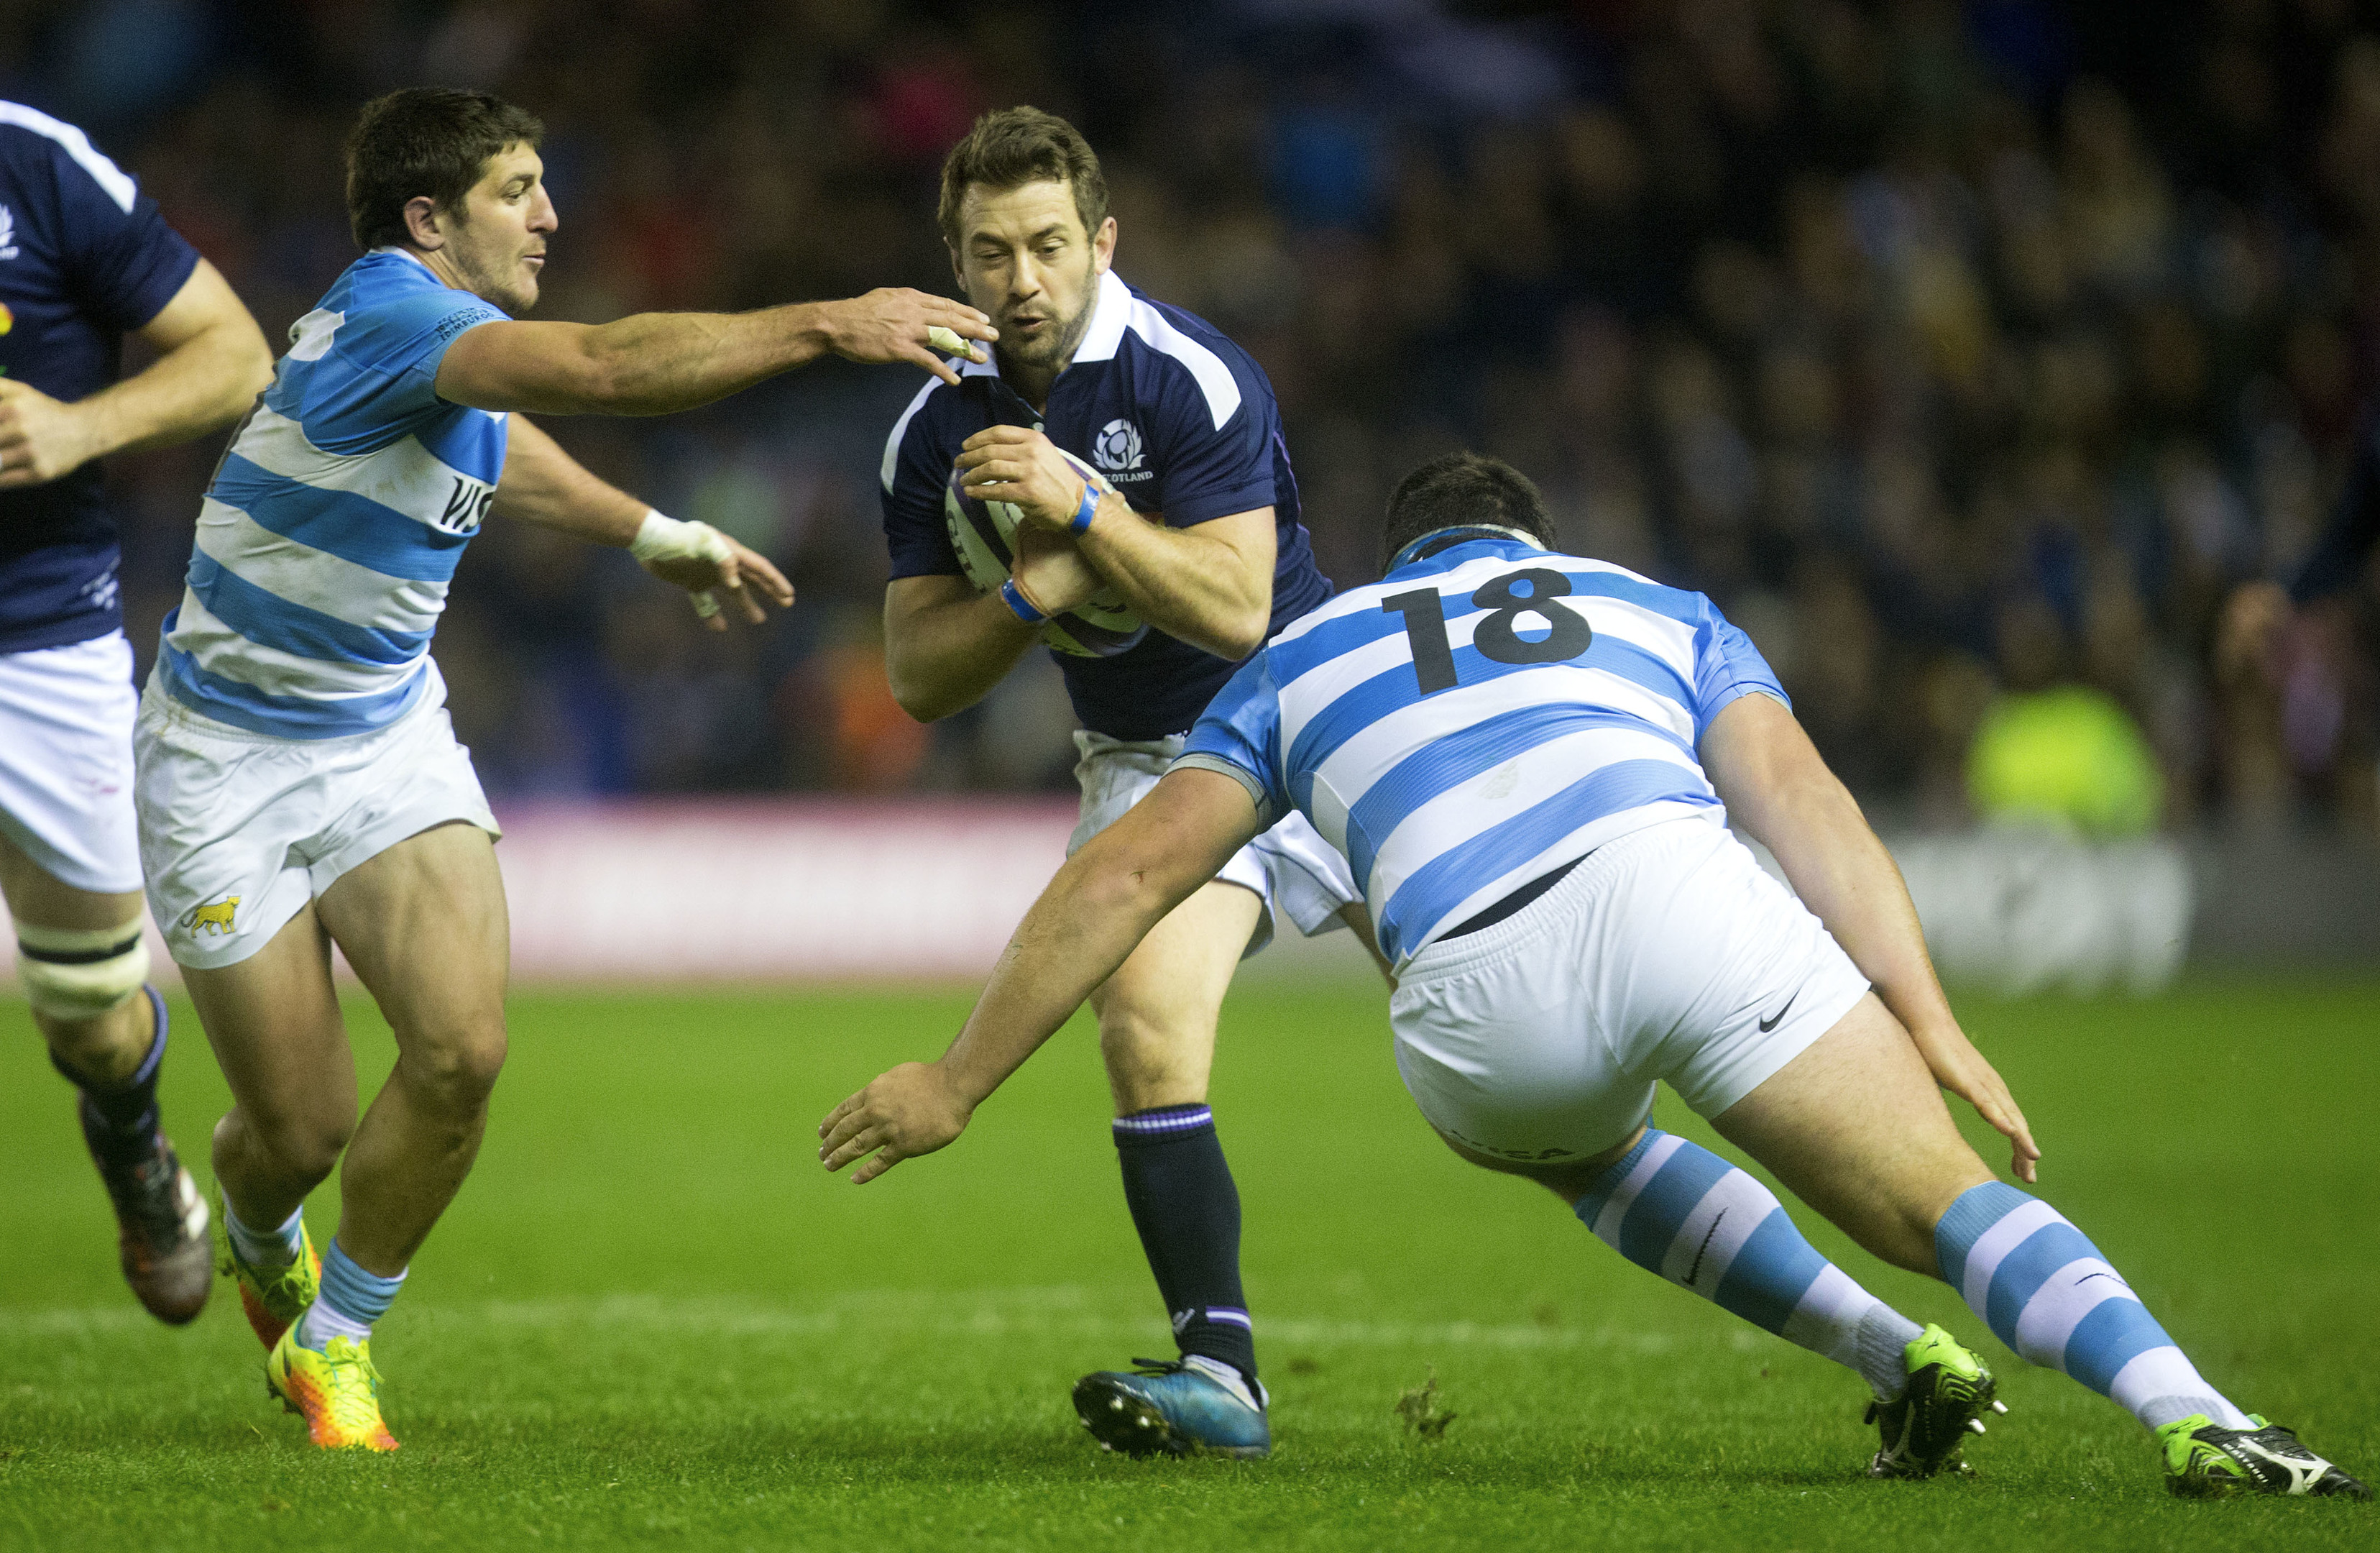 Greig Laidlaw didn't have his greatest game against Argentina, but was the hero all the same.